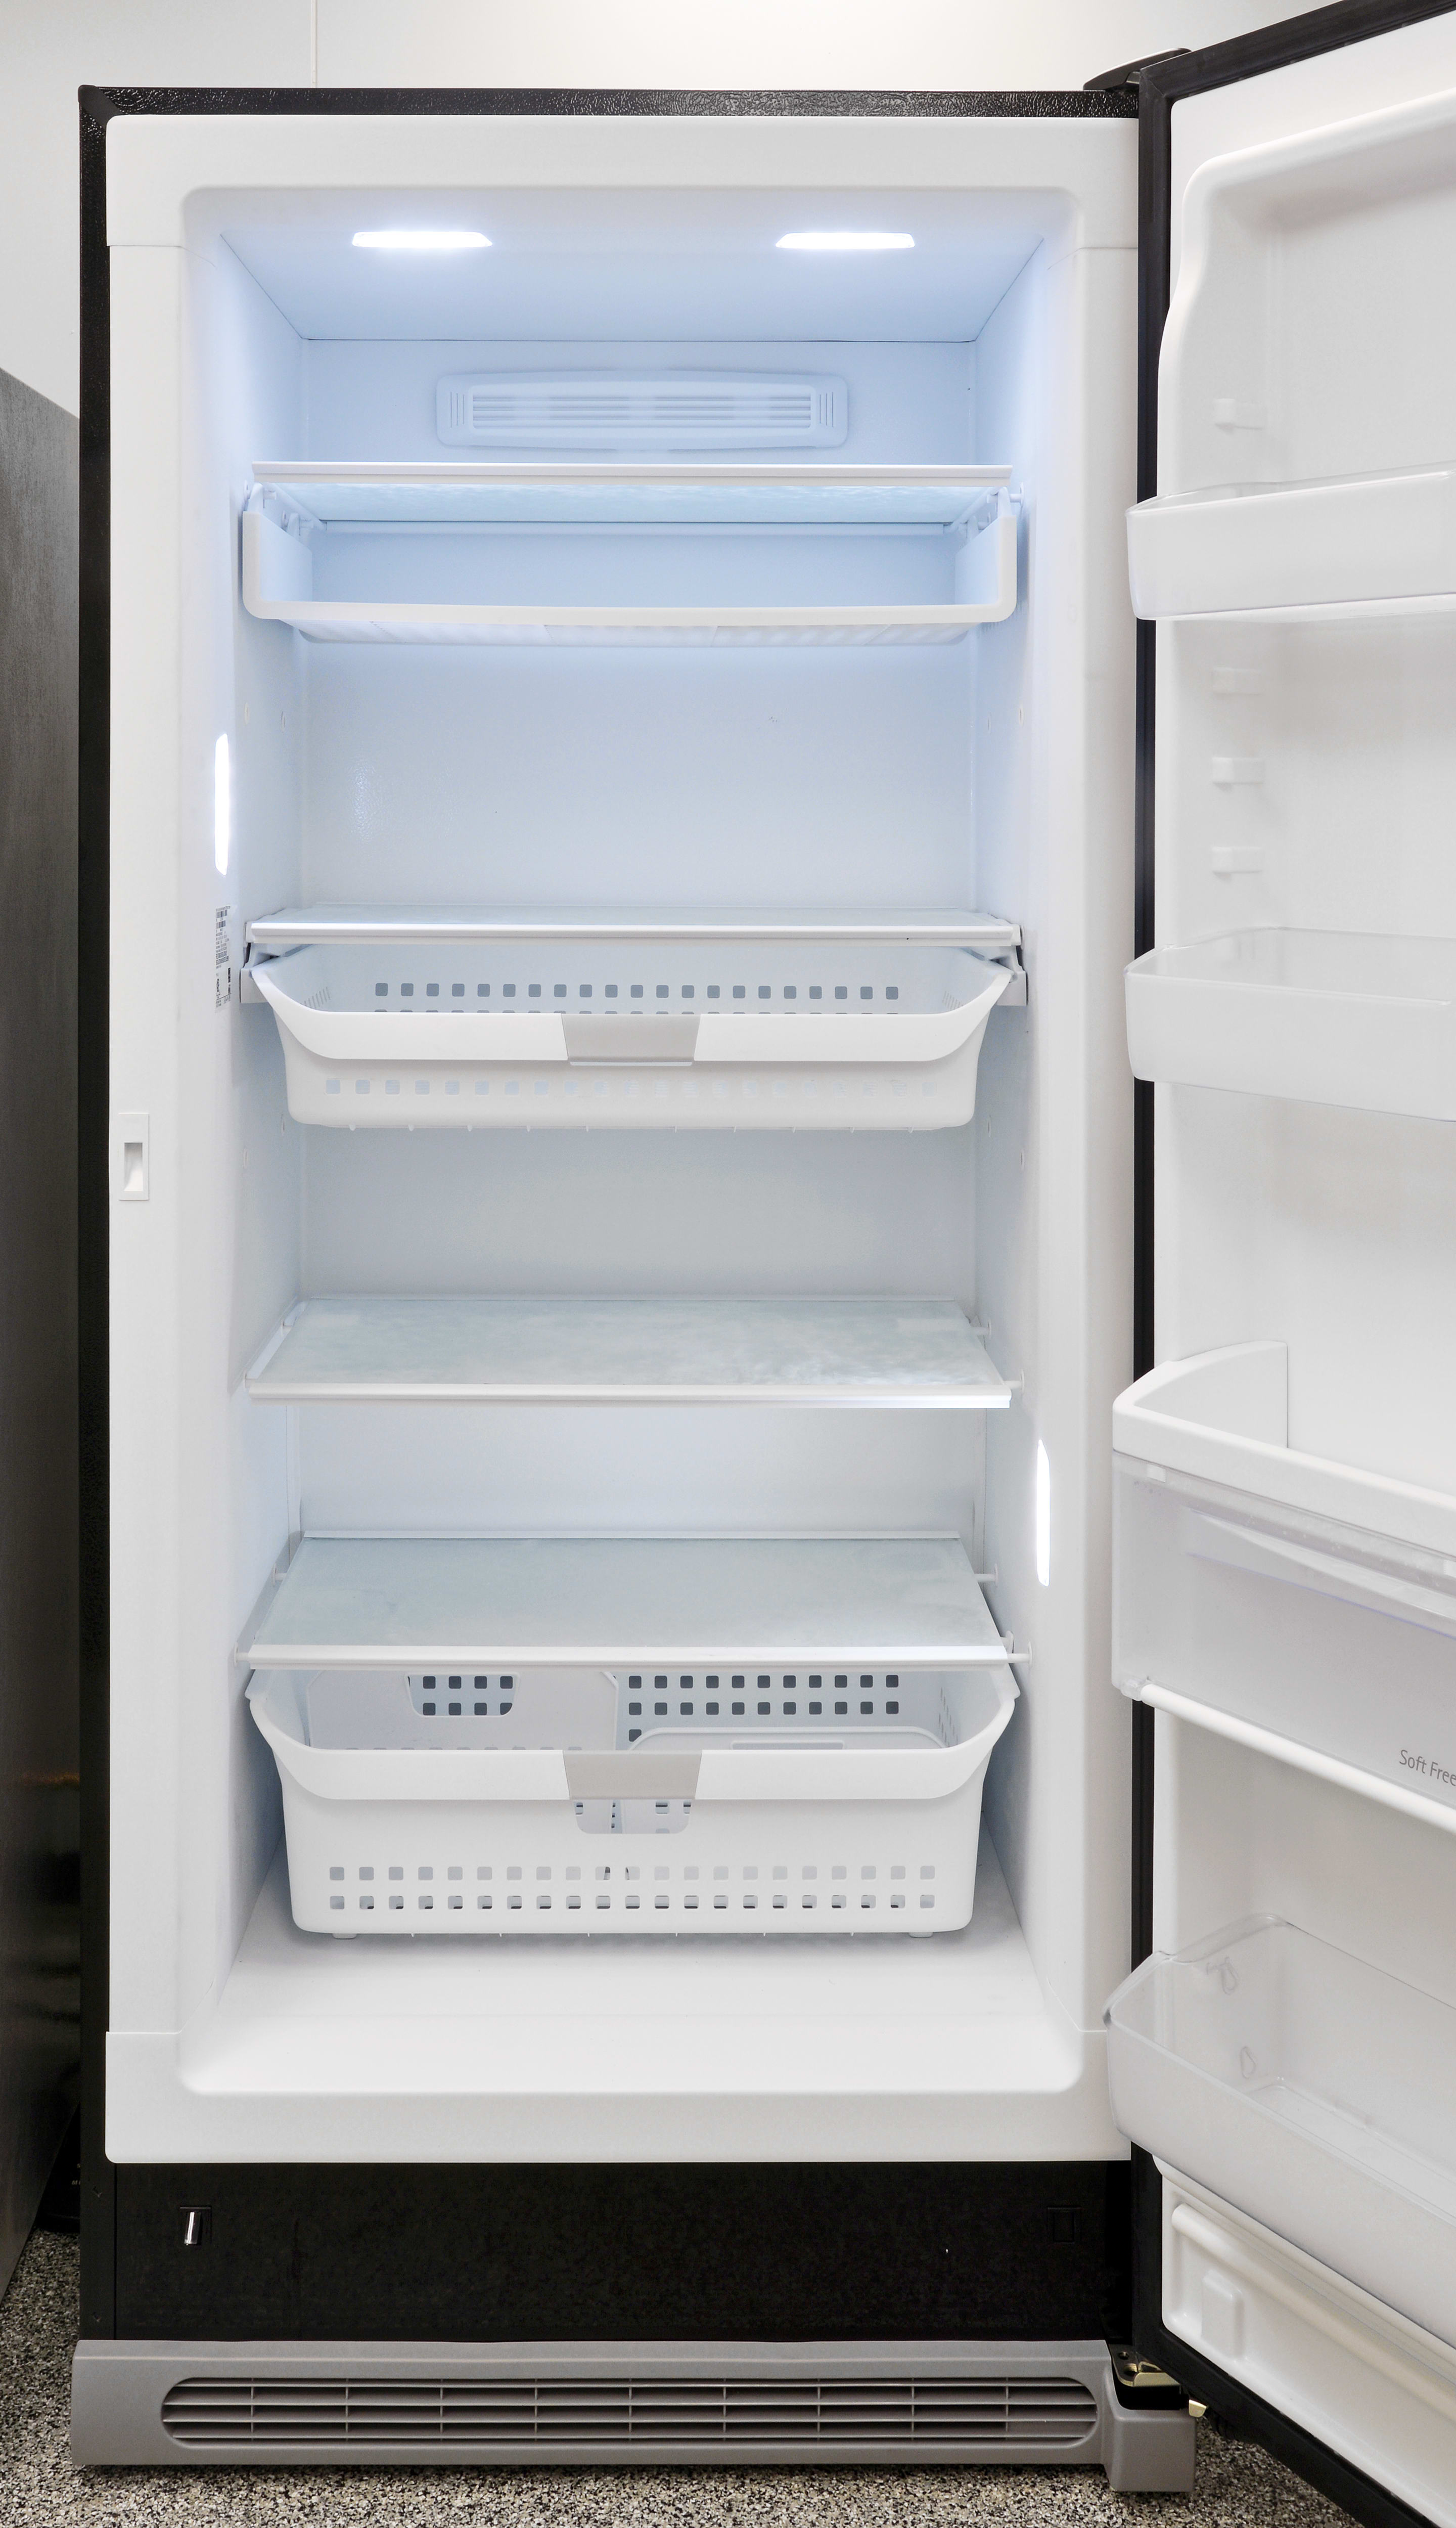 The main section of the Kenmore Elite 27003 has plenty of adjustable shelves and sliding drawers for easy organization.